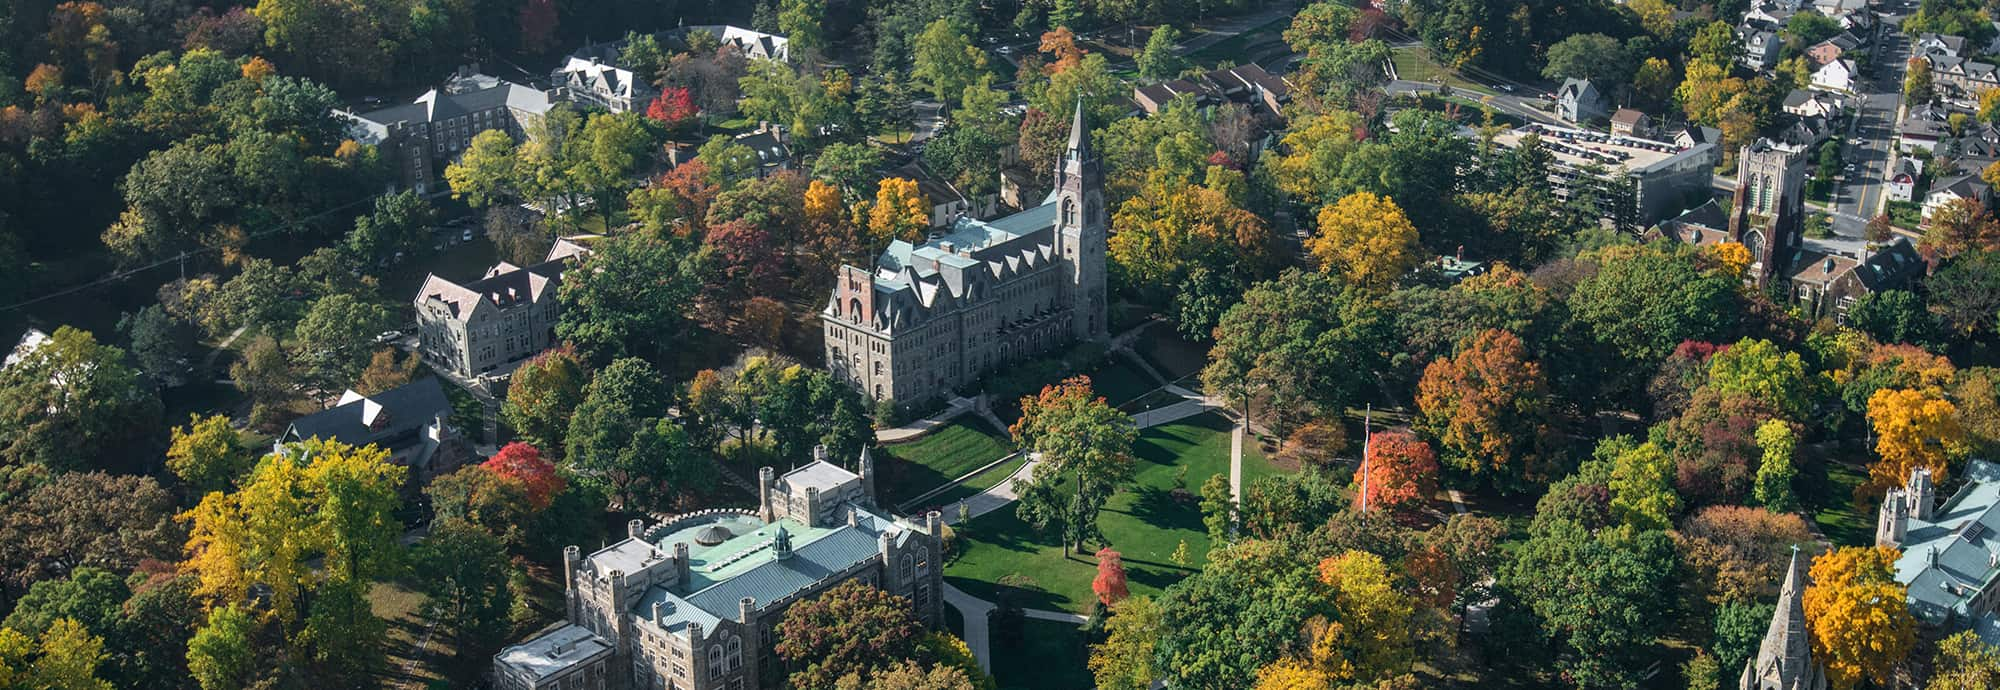 Aerial view of Lehigh University Asa Packer Campus